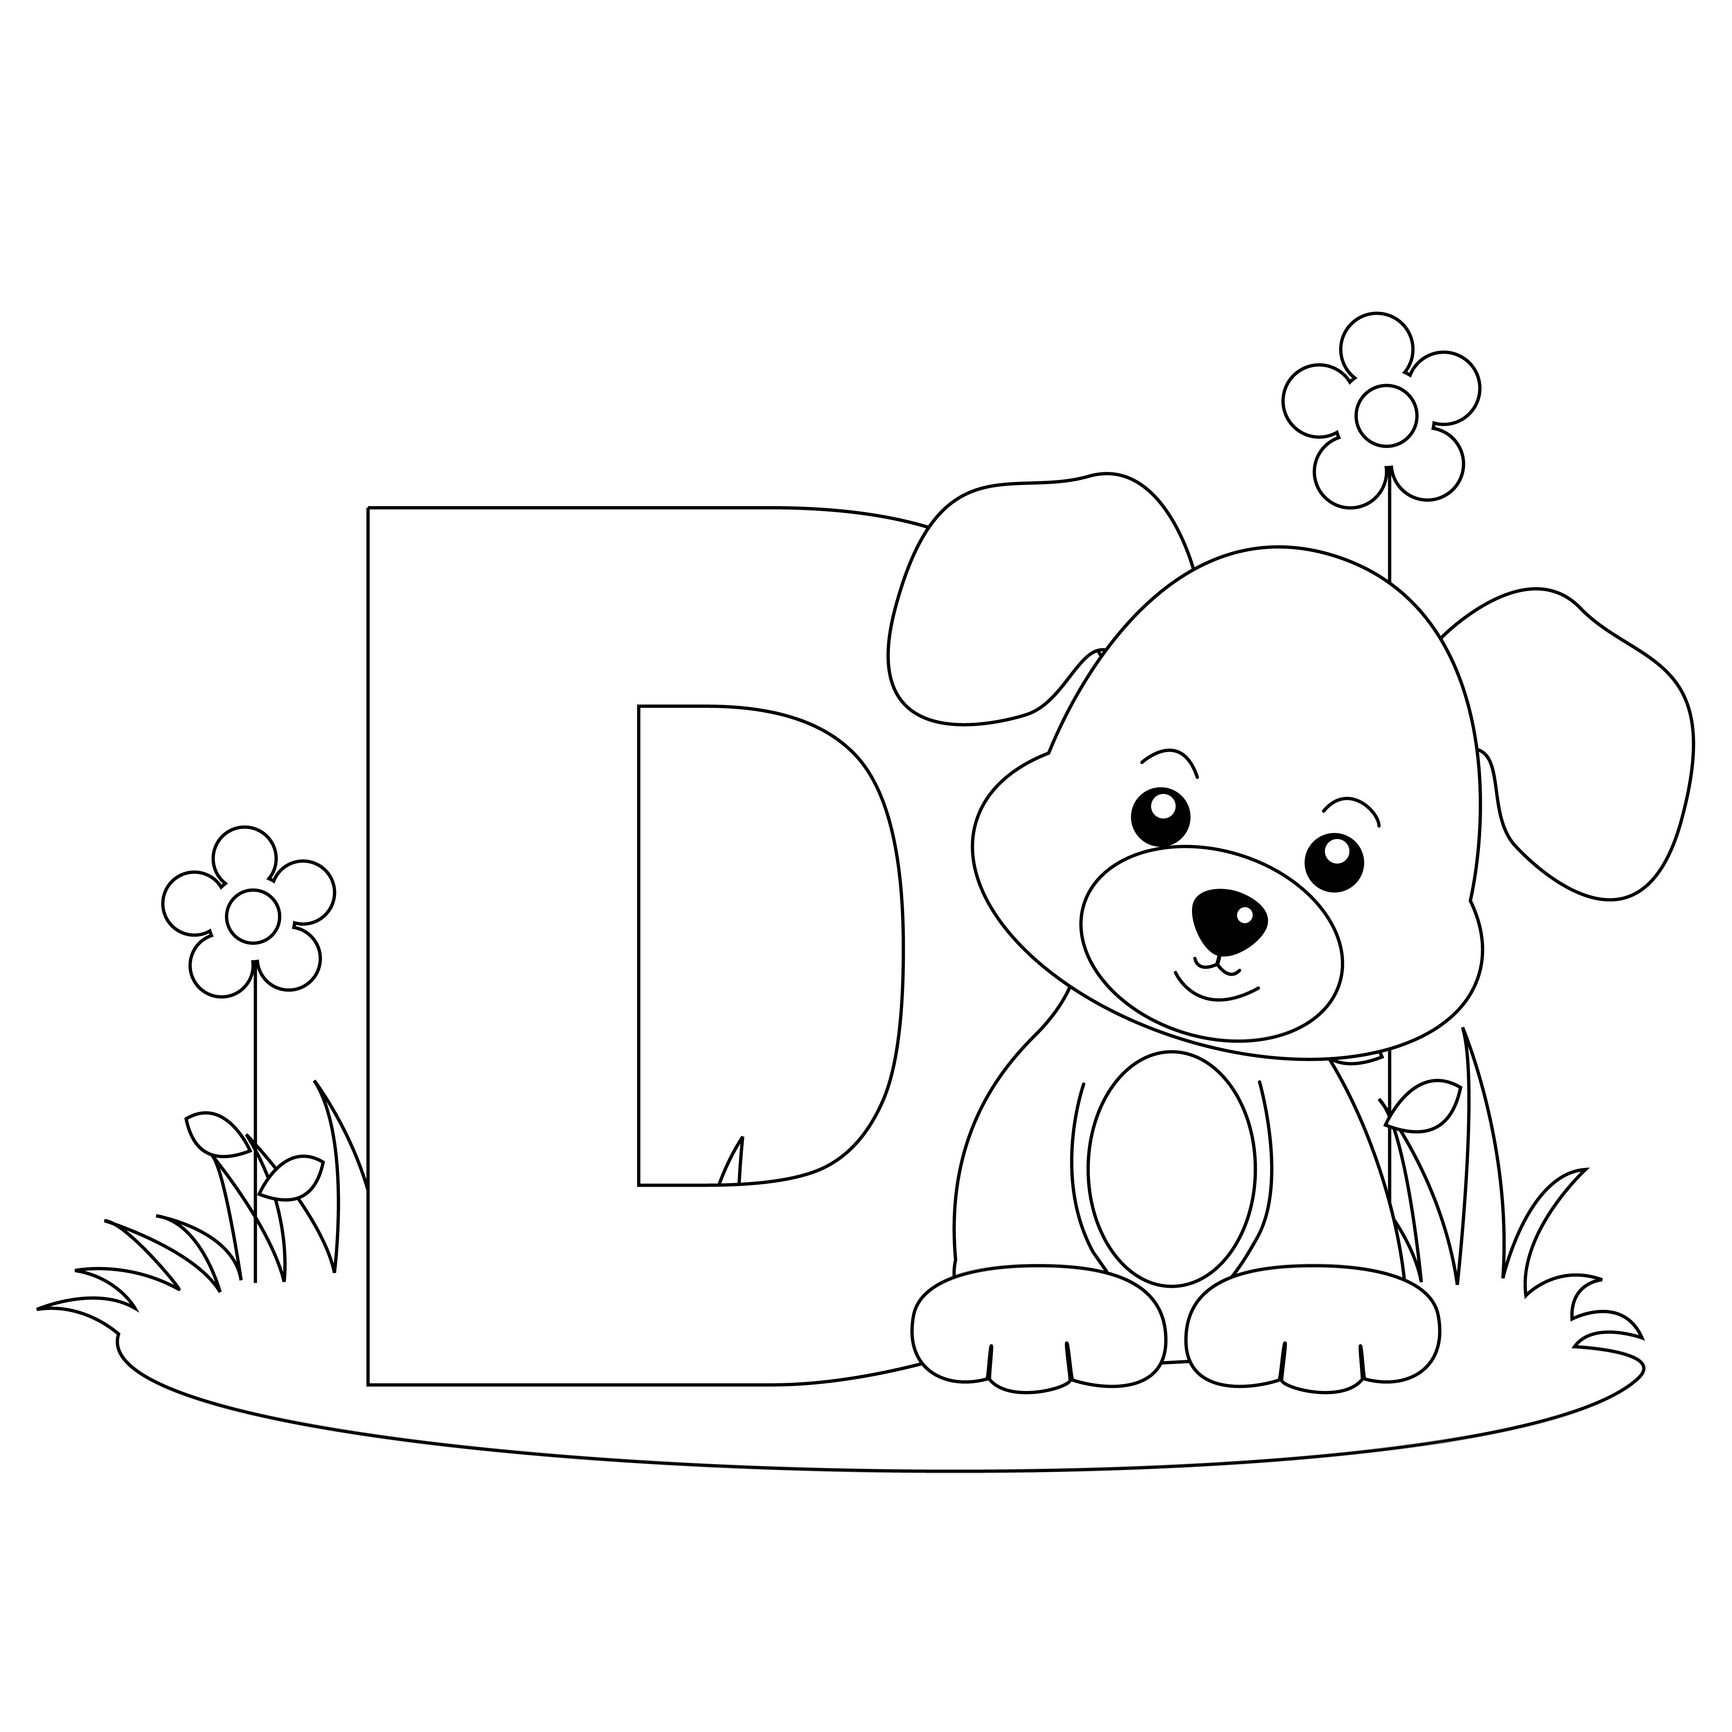 Alphabet Letter D Coloring Worksheet And Template For Kids